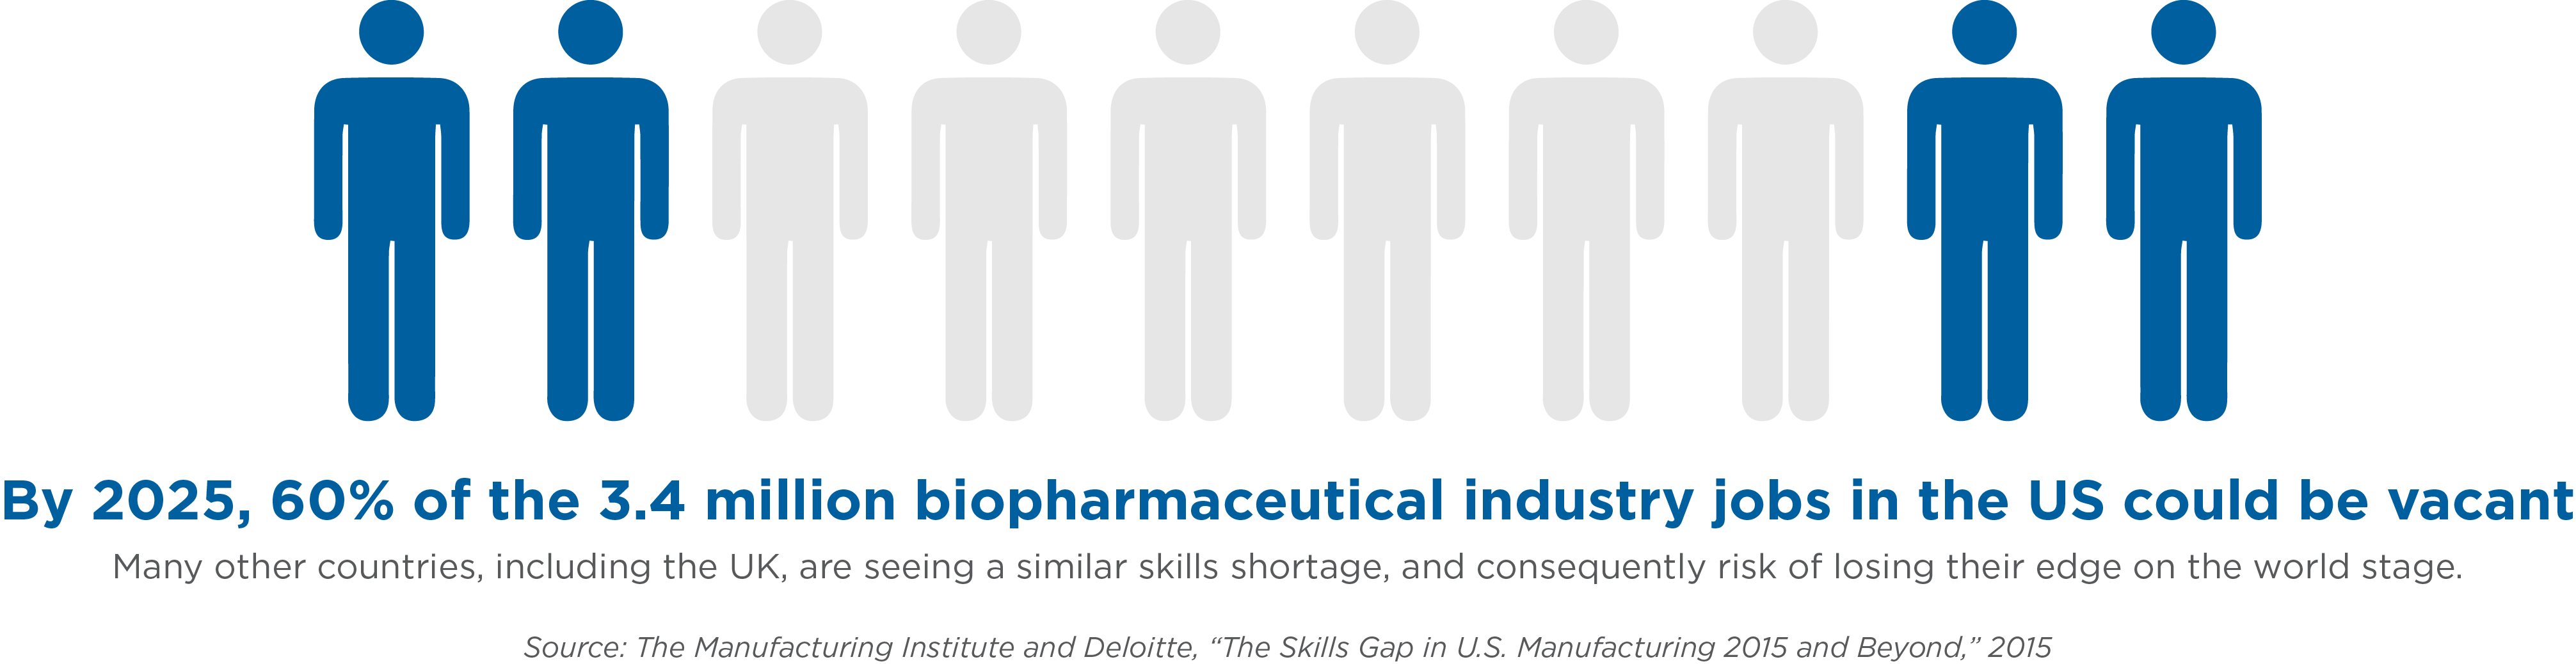 """The Skills Gap in the U.S. Manufacturing 2015 and Beyond"""" - The Manufacturing Institute and Deloitte"""